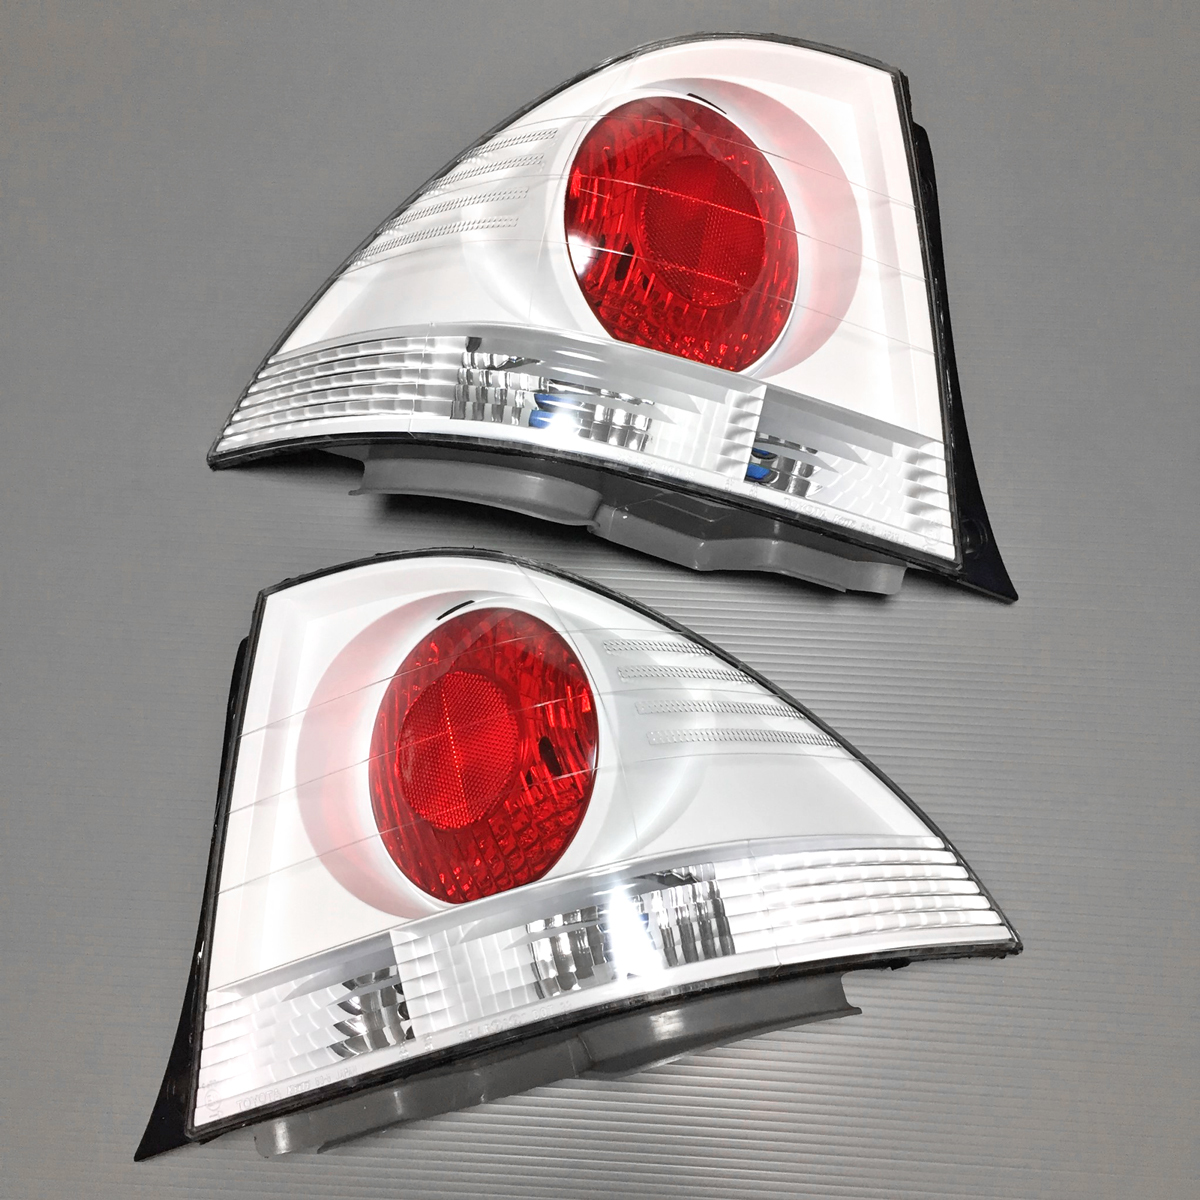 Altezza Inner White Tail Lamp Left Right Out Sxe10 Gxe10 Rs200 As200 Is200 Is300 Lights